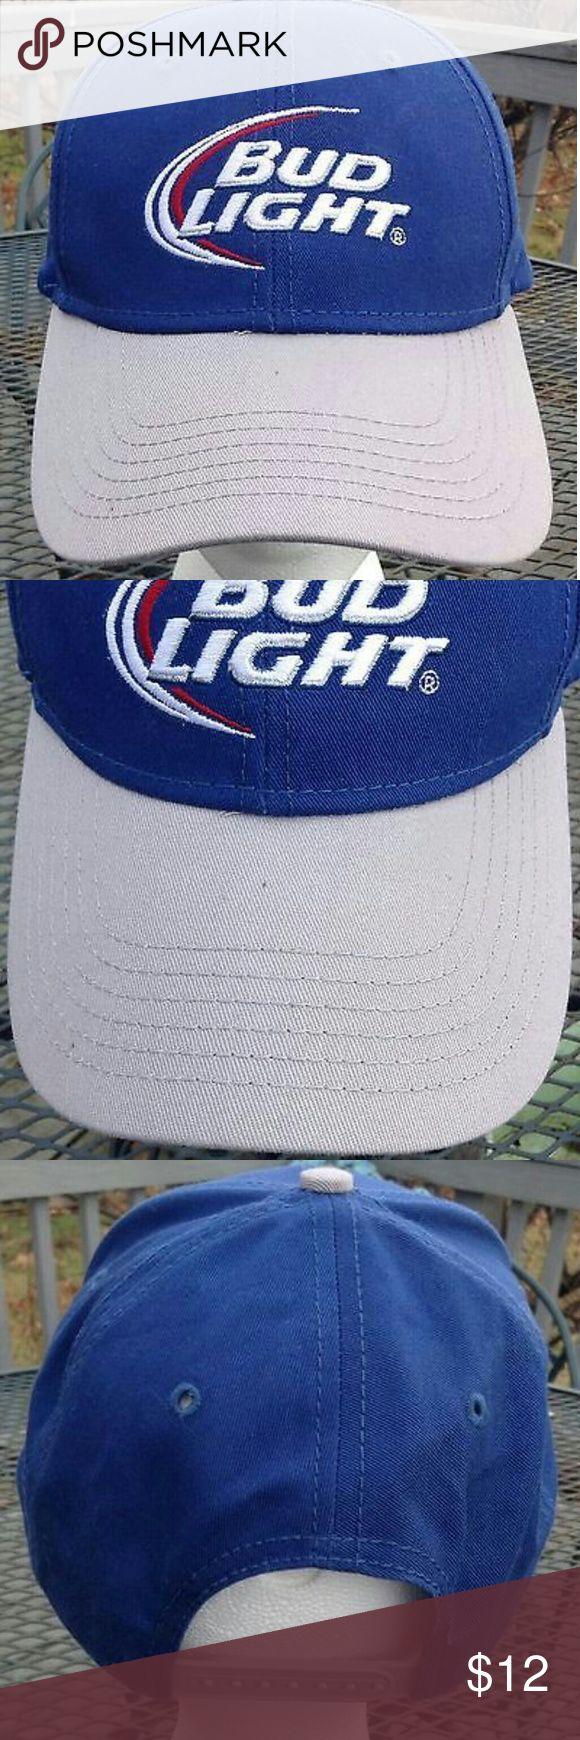 Bud Light Beer men's baseball cap. New without tags. Bud Light Beer men's Blue & Silver bill baseball hat / cap with snap back. New without tags in Mint wearable condition. One size fits all. Bud Light Beer Accessories Hats